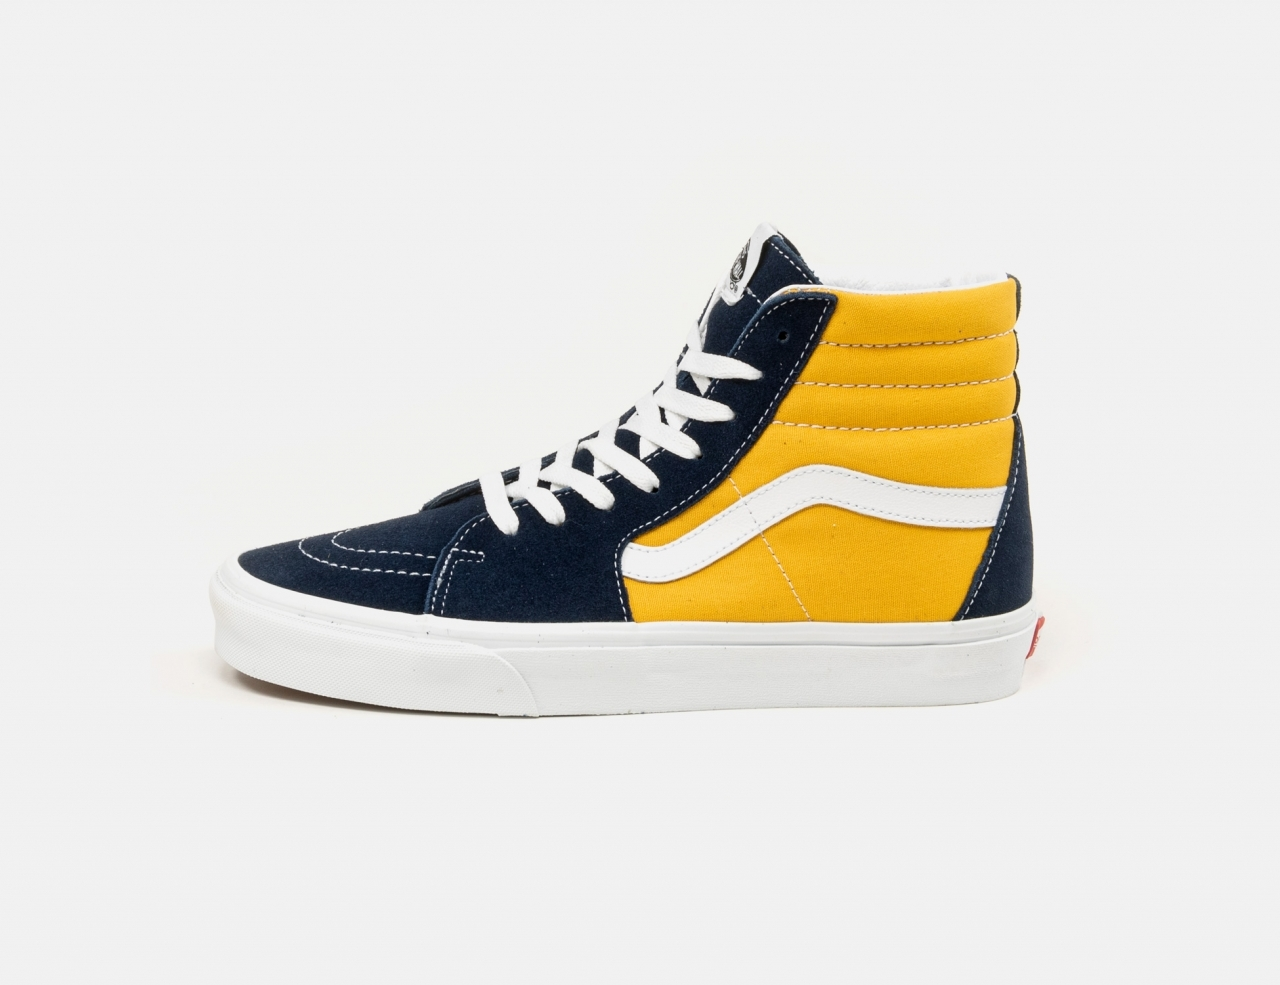 VANS Sk8-Hi Sneaker - (Classicsport) Dress Blues / Saffron